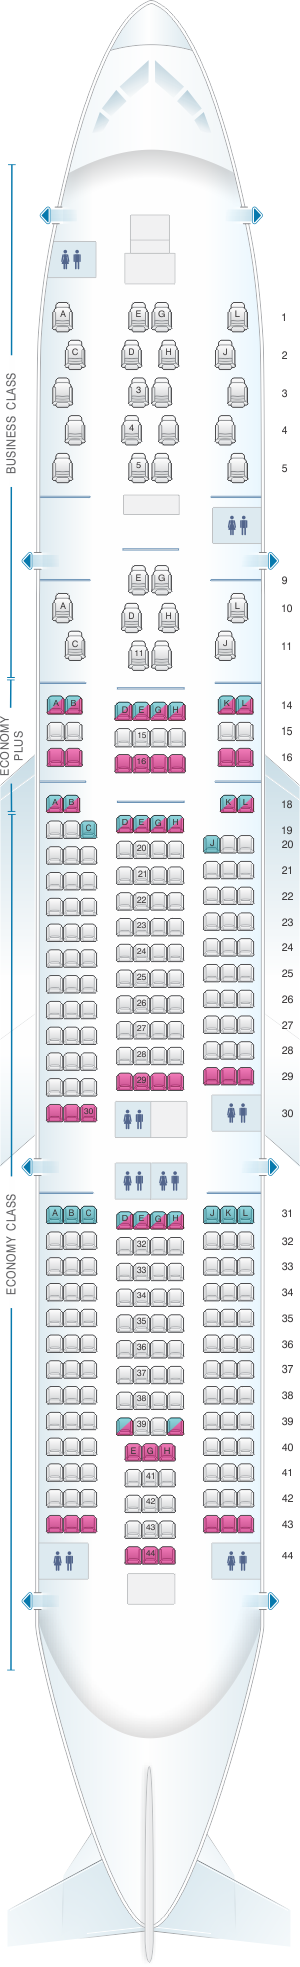 Seat map for Alitalia Airlines - Air One Boeing B777 200 ER